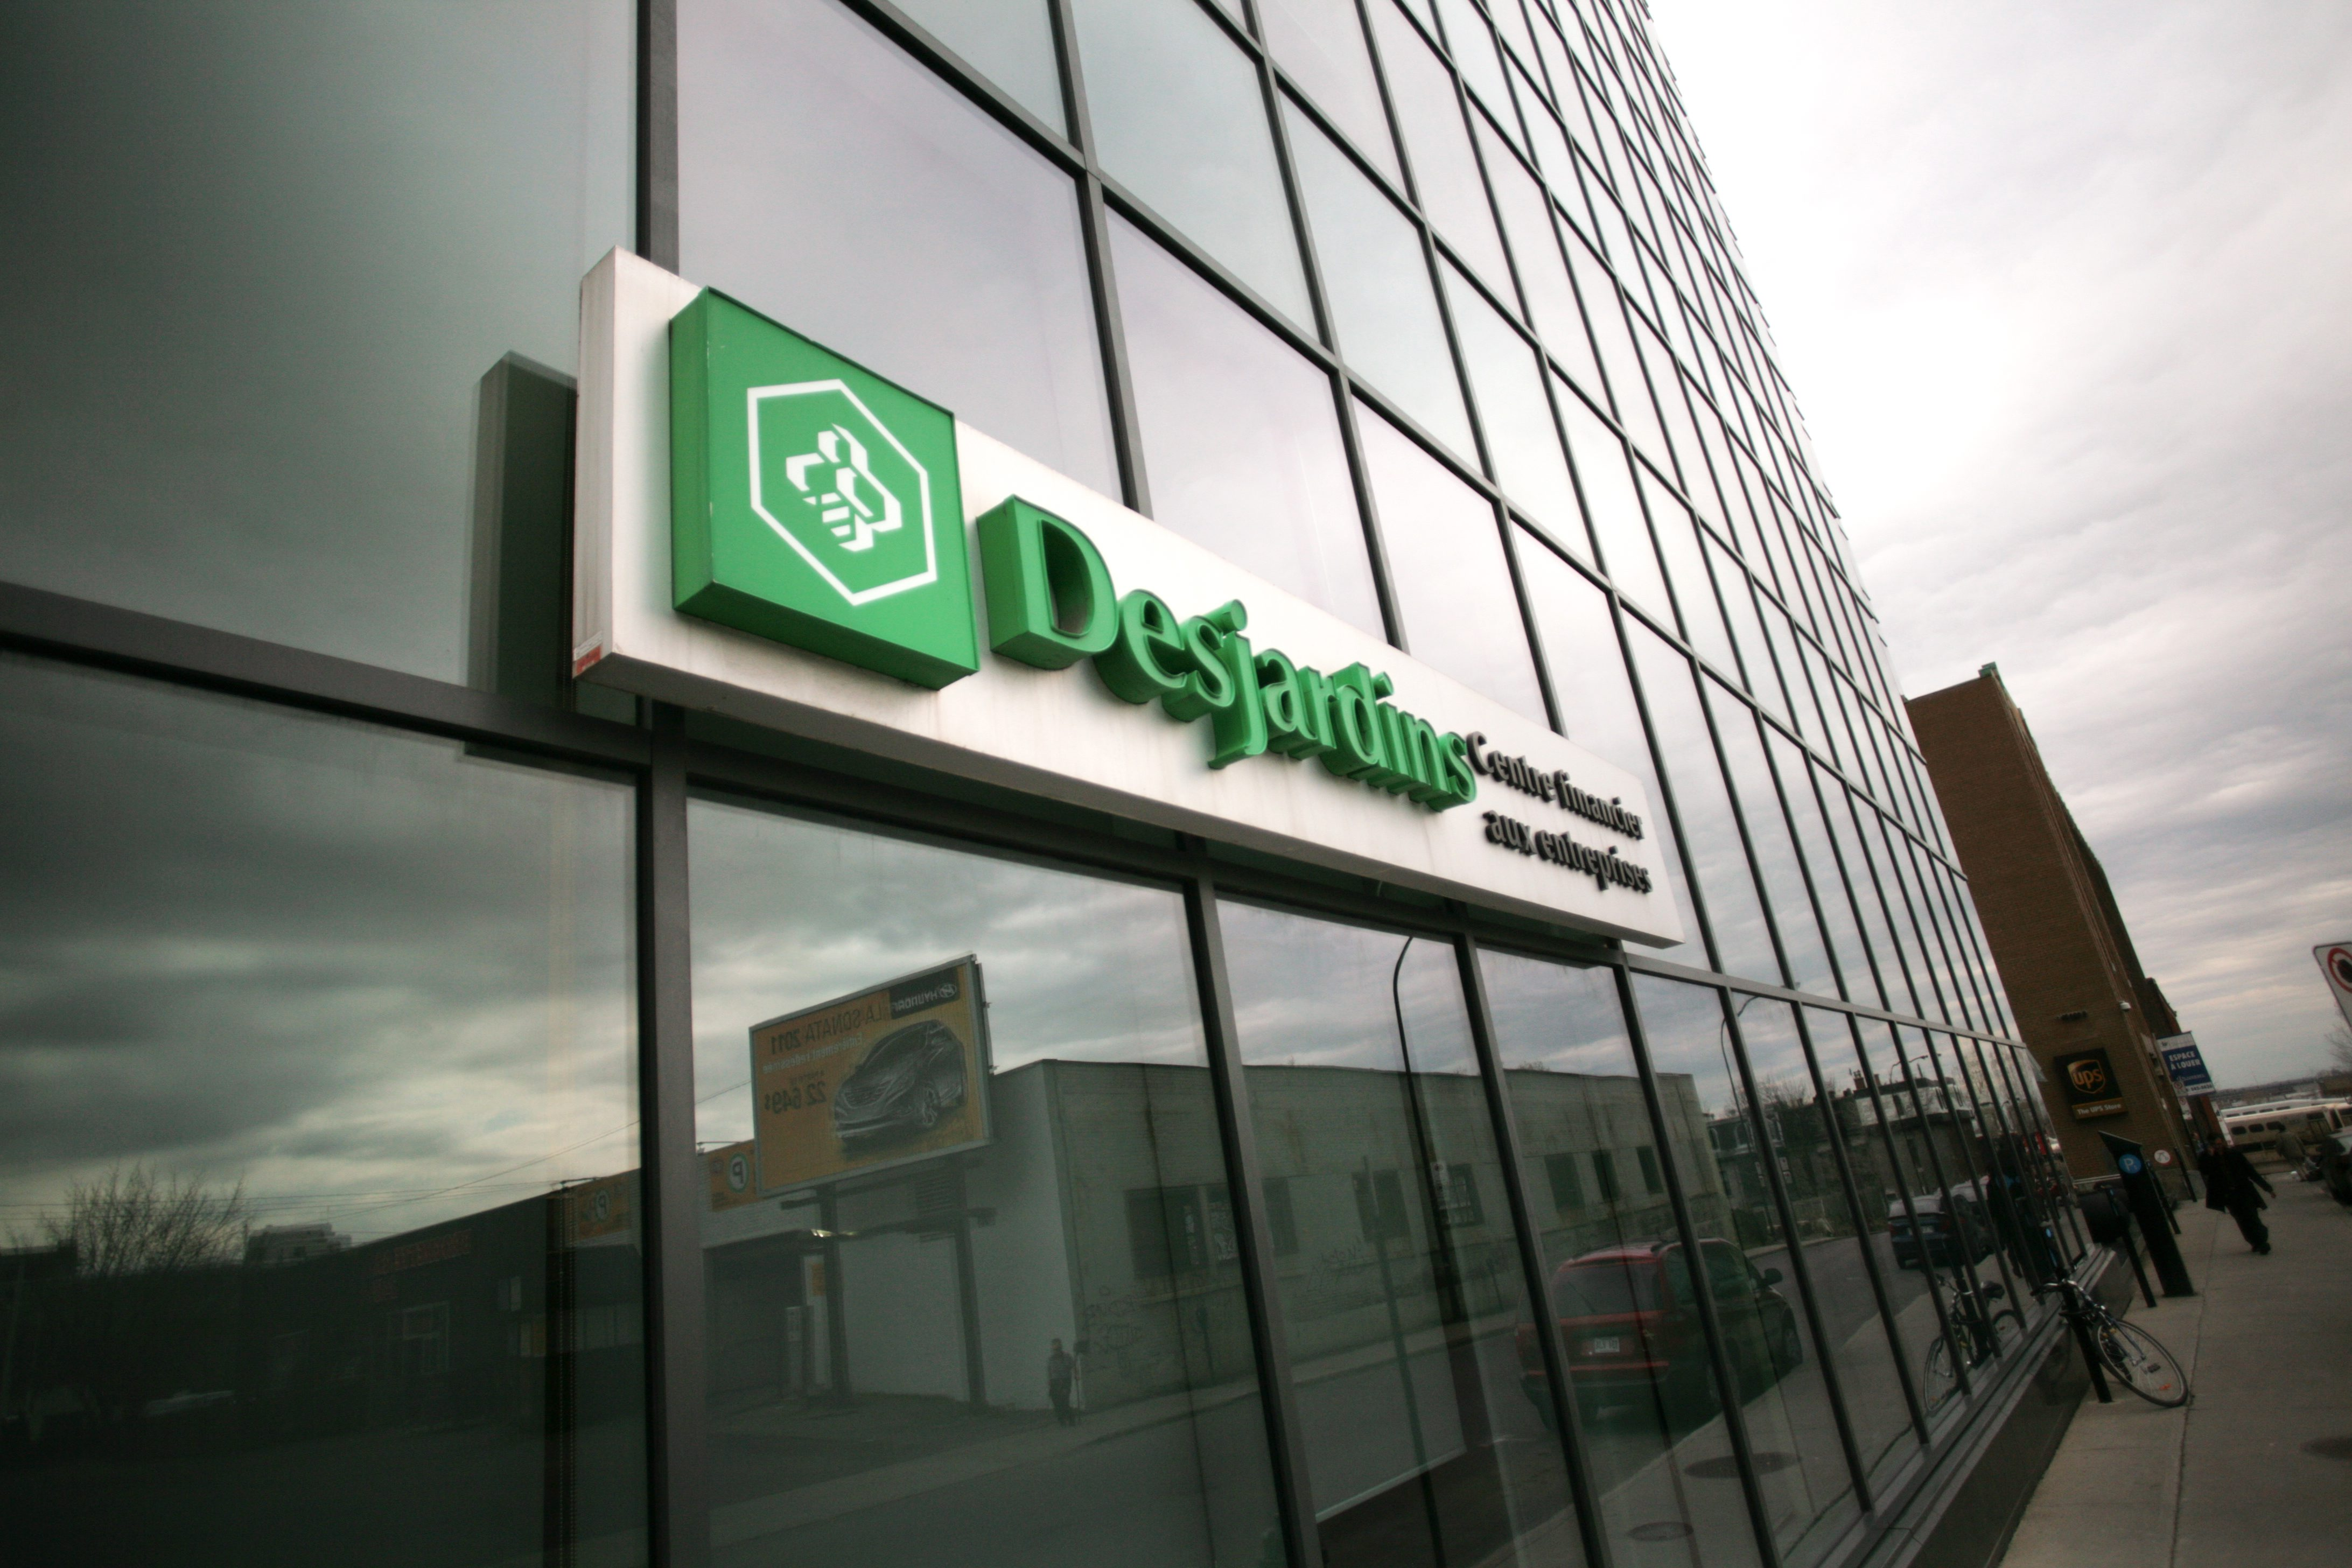 Desjardins suffers data breach affecting 2.9 million members after inside job